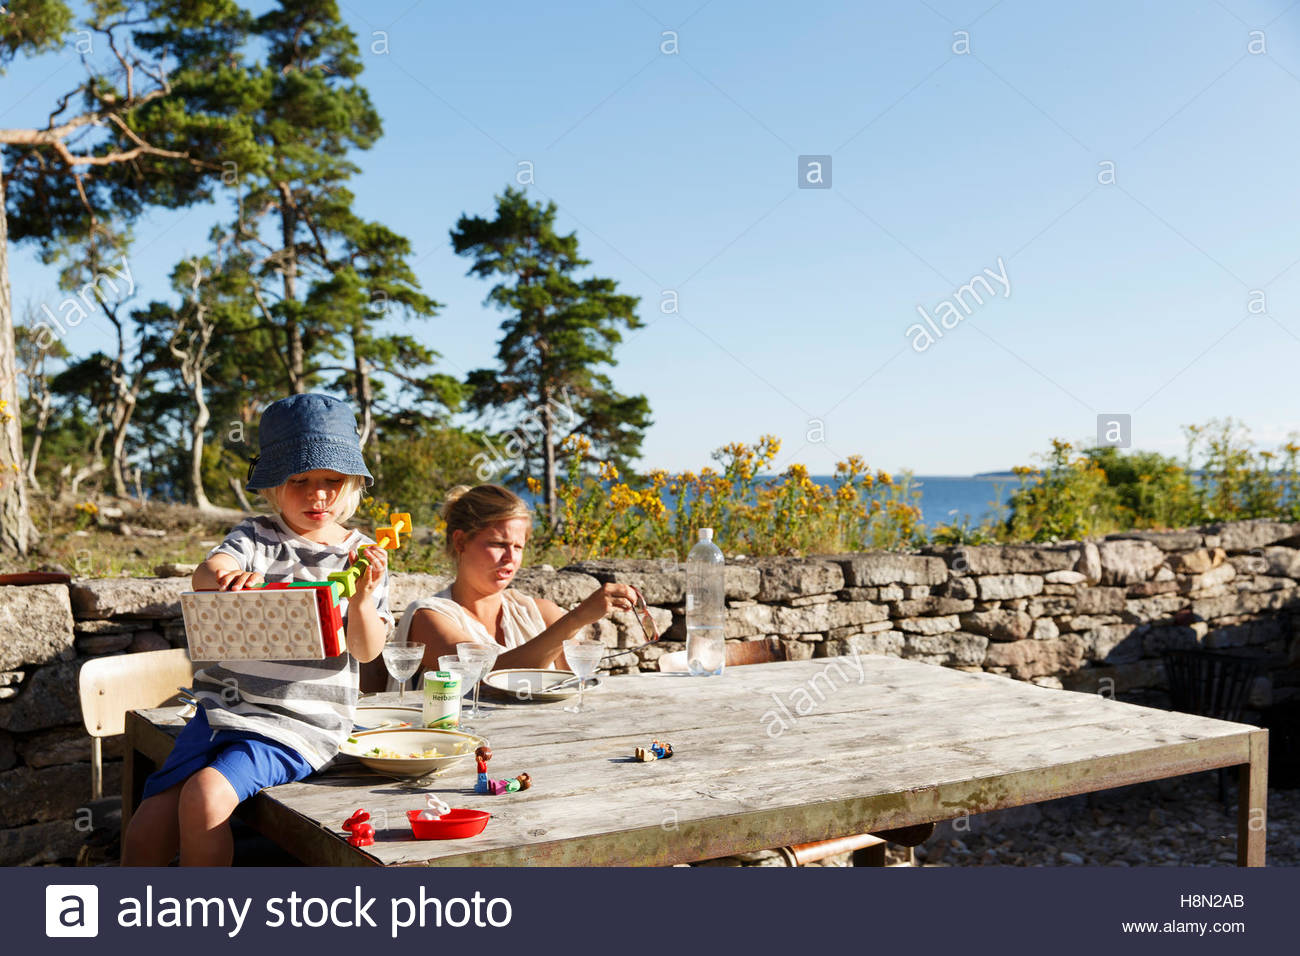 Mother and daughter (2-3) sitting at table outdoors - Stock Image